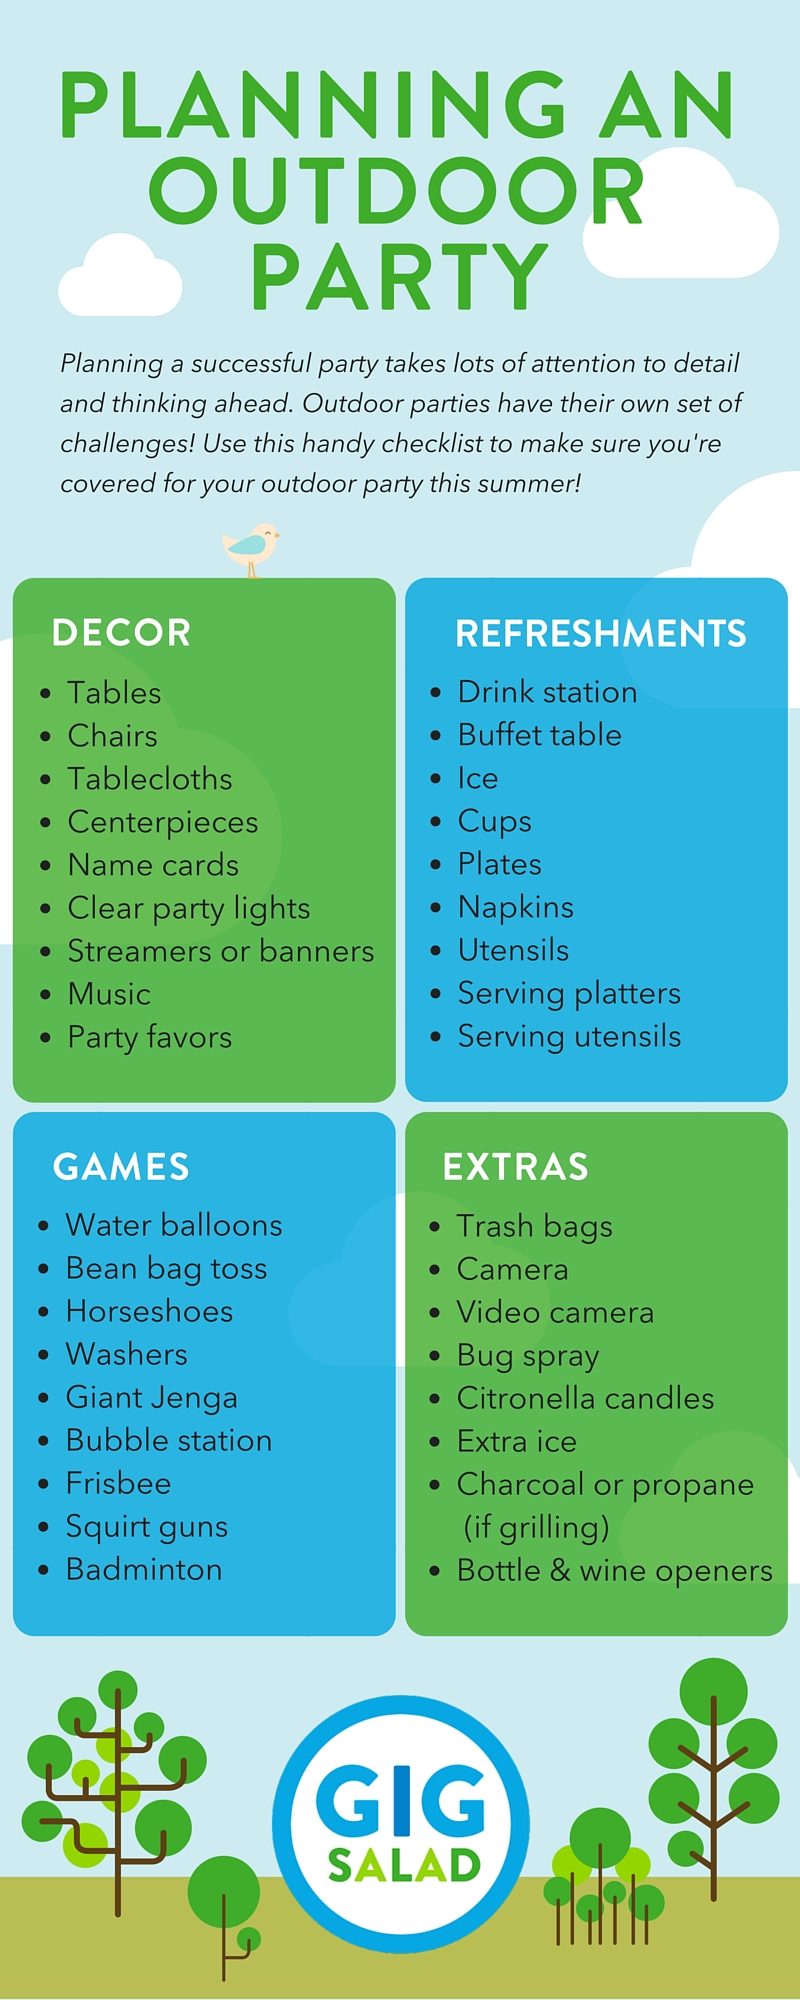 Checklist for Planning an Outdoor Party | The GigSalad ...